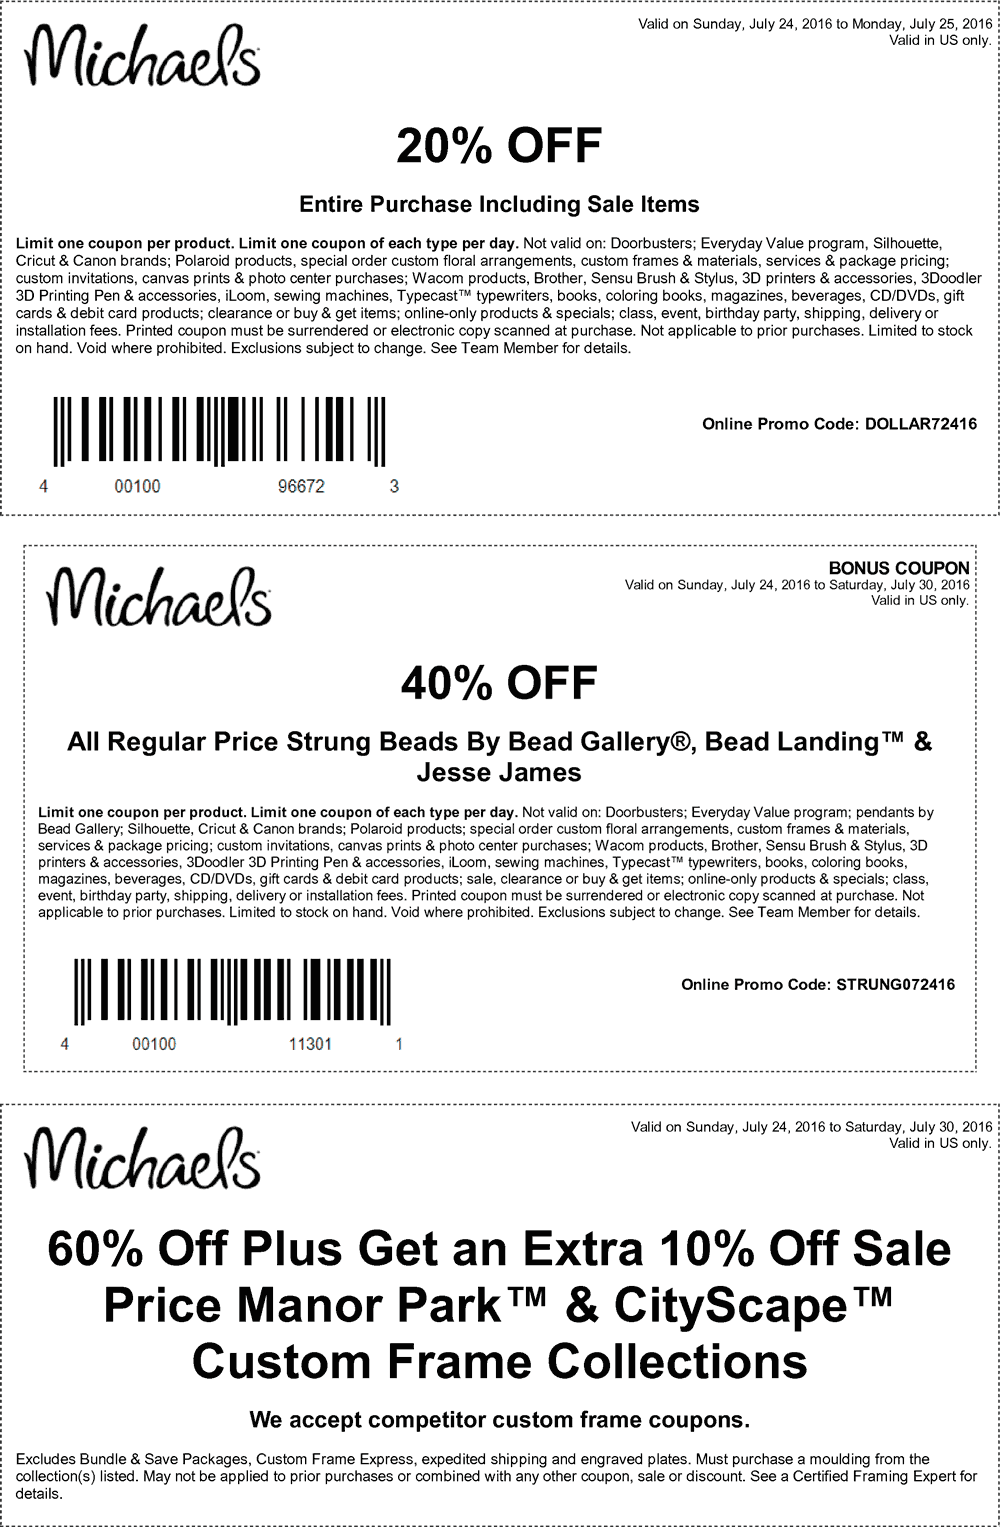 michaels 60 off coupon 2018 eating out deals in glasgow